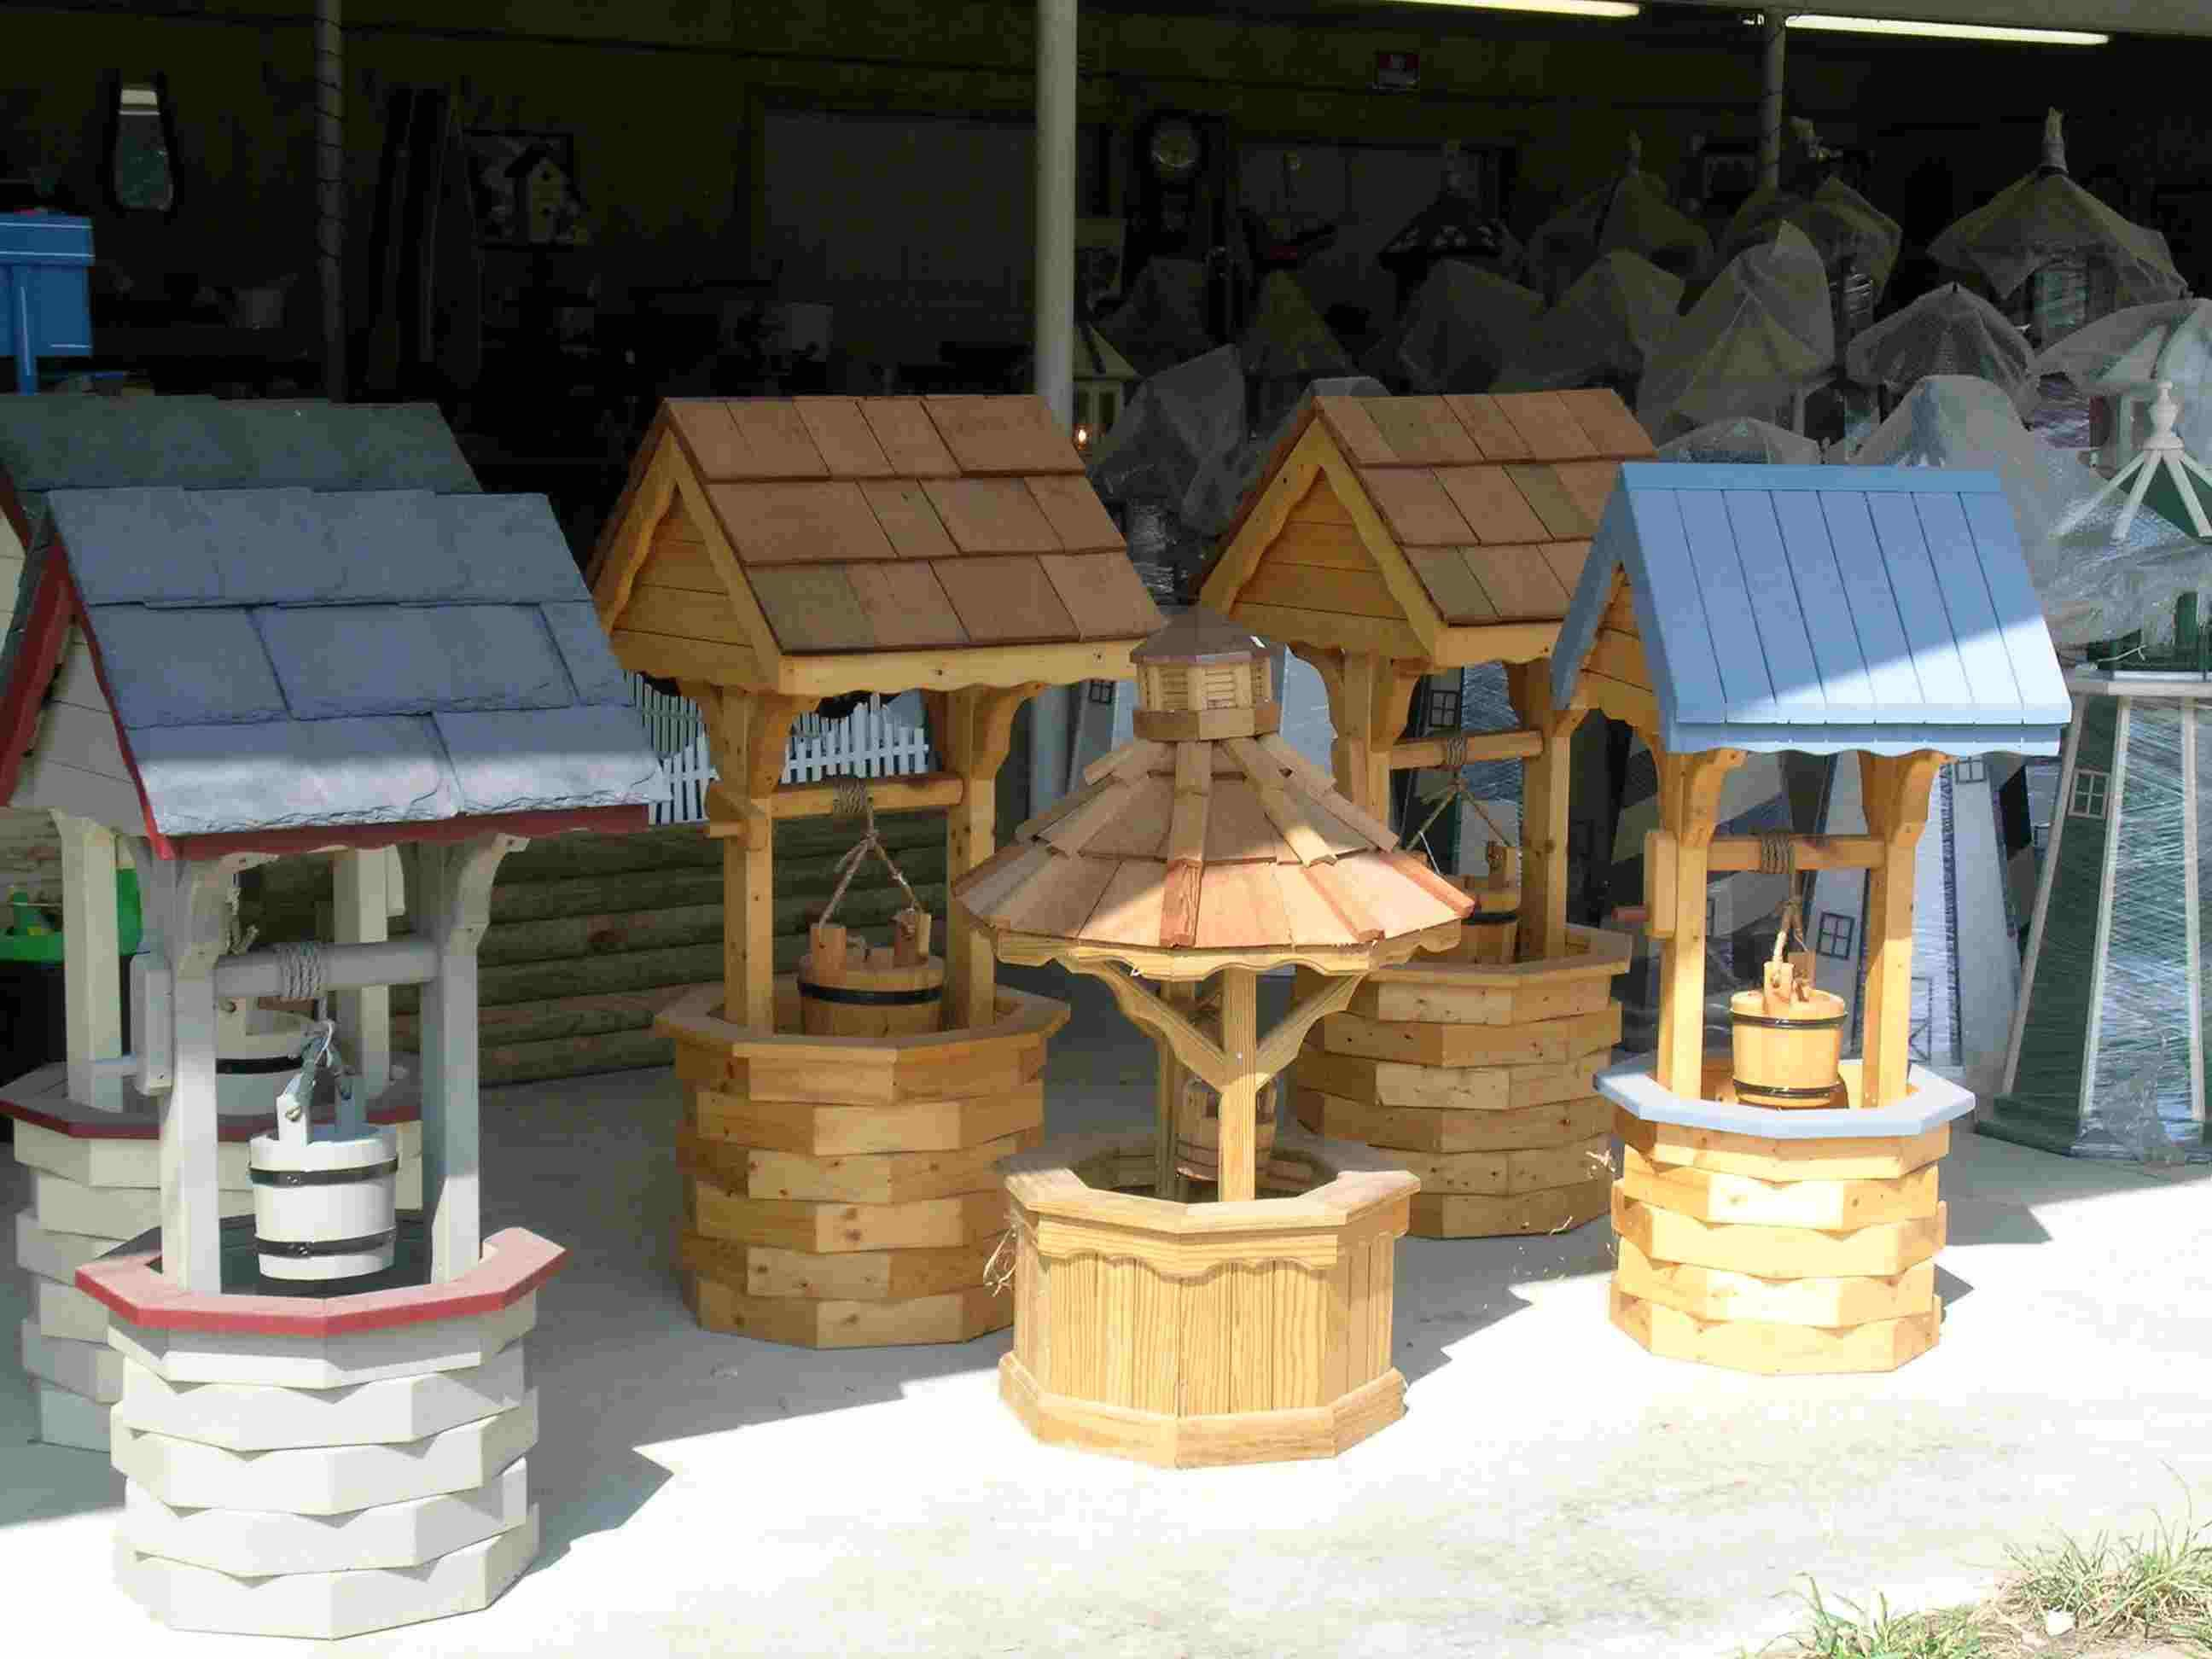 Wishing well lawn ornament - How To Build A Round Wooden Wishing Well Google Search